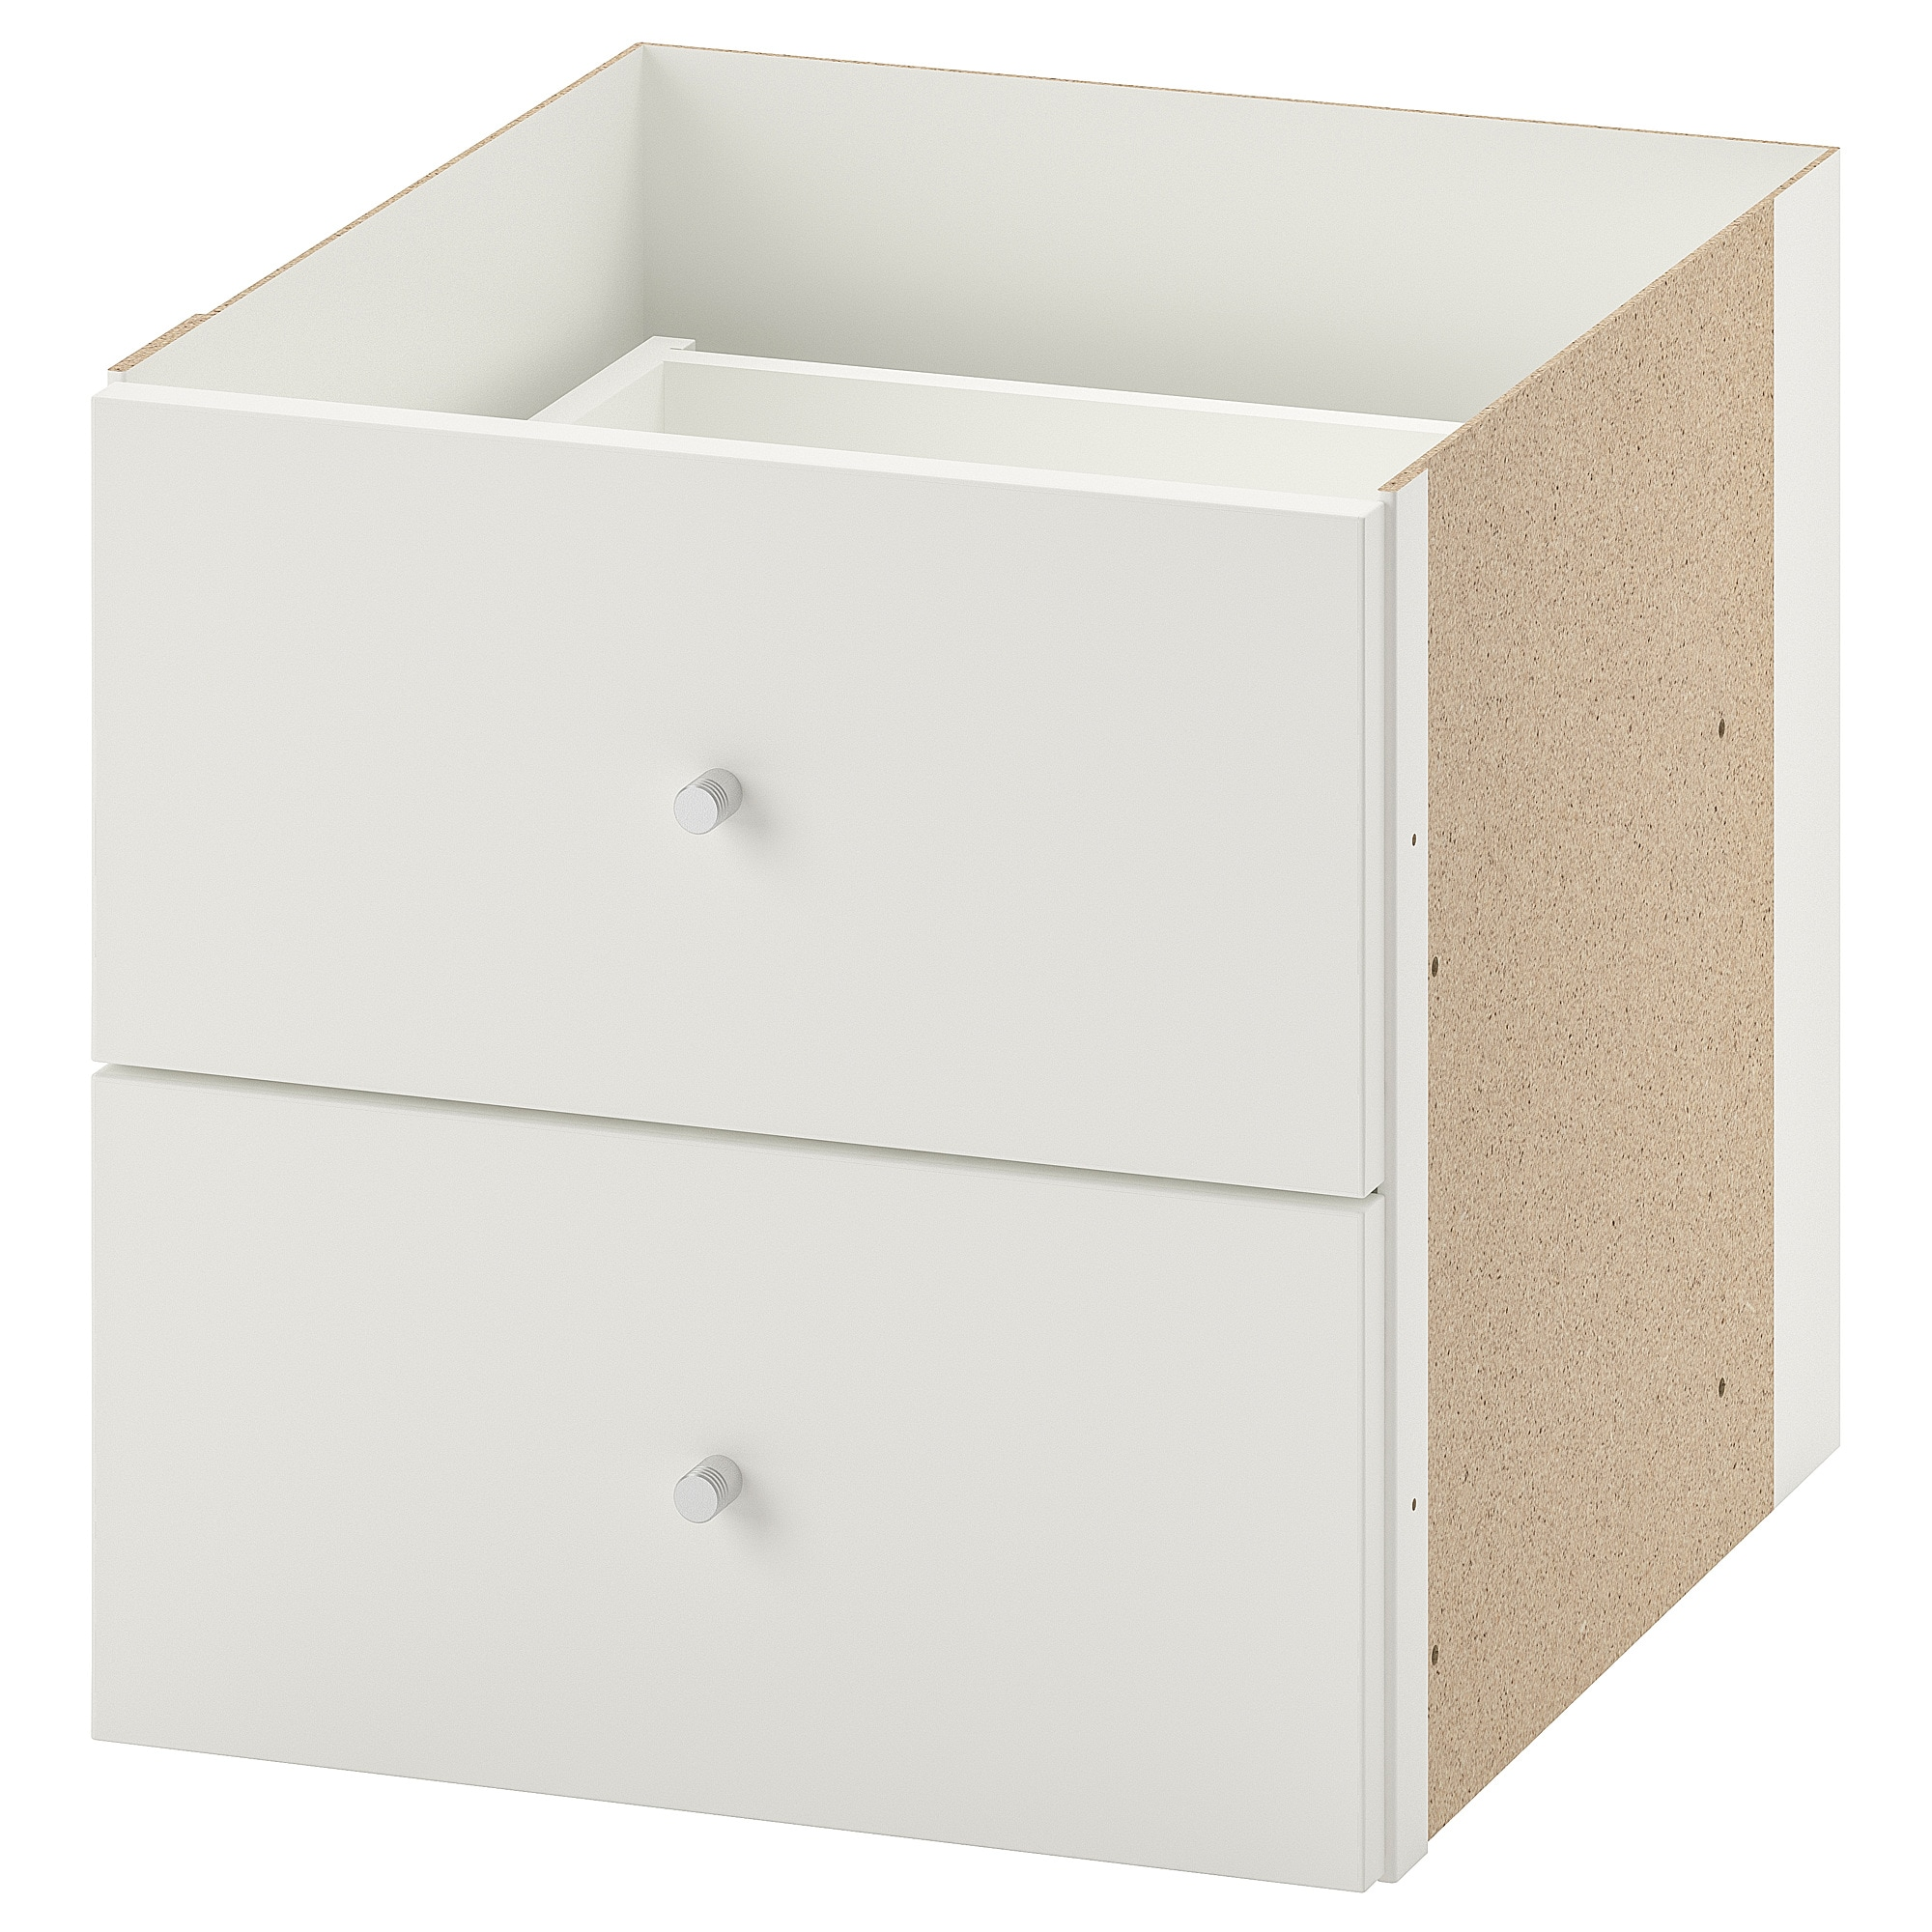 Ikea Expedit Youtube Kallax Insert With 2 Drawers White